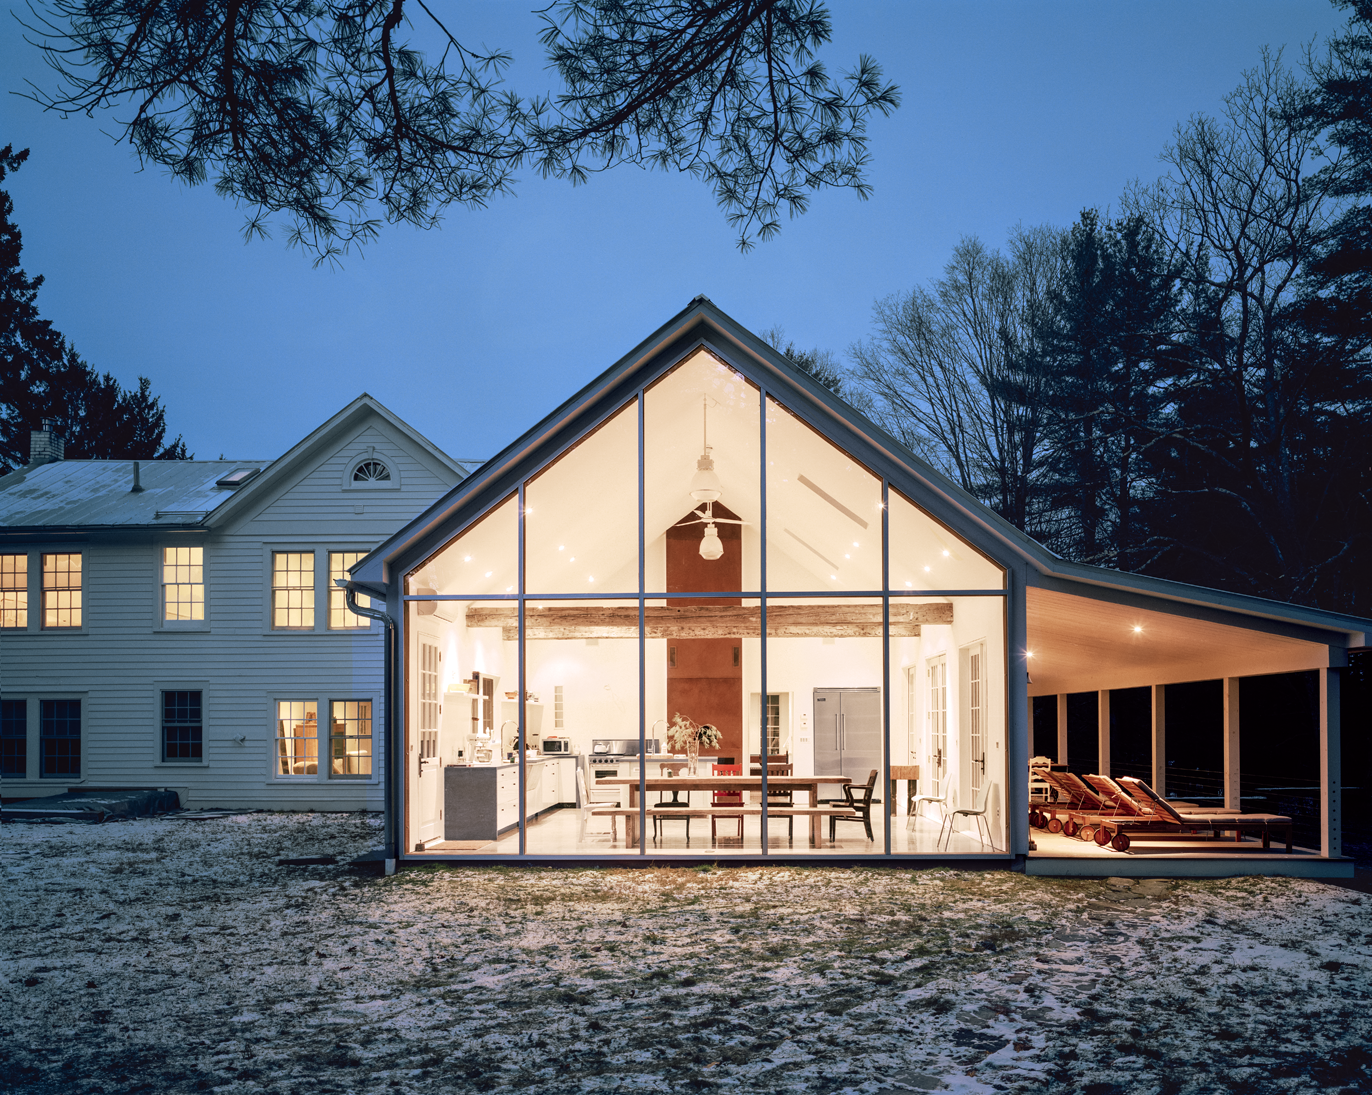 A cozy winter weekend getaway to the Floating Farmhouse in upstate New York is just two hours from NYC.